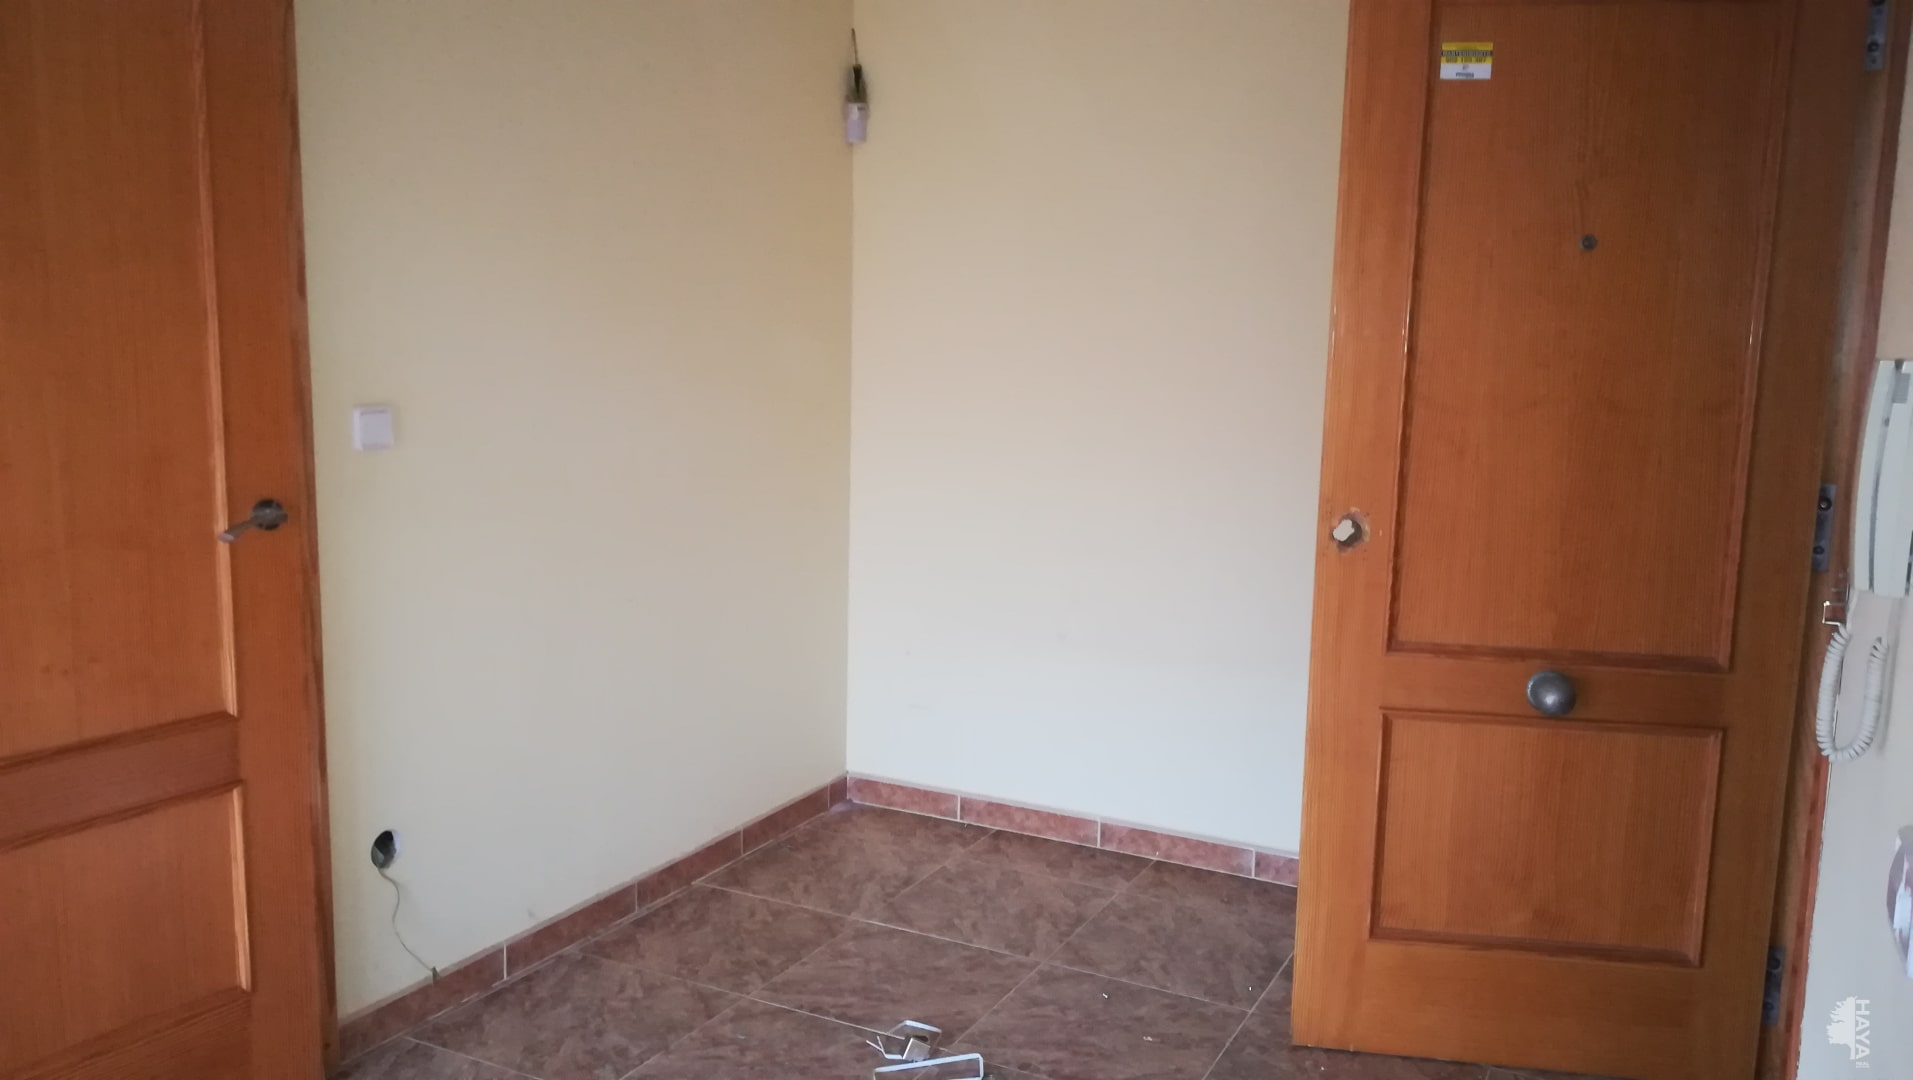 Apartment in Piles<br /> 1 bedroom - 60600.00 Euros